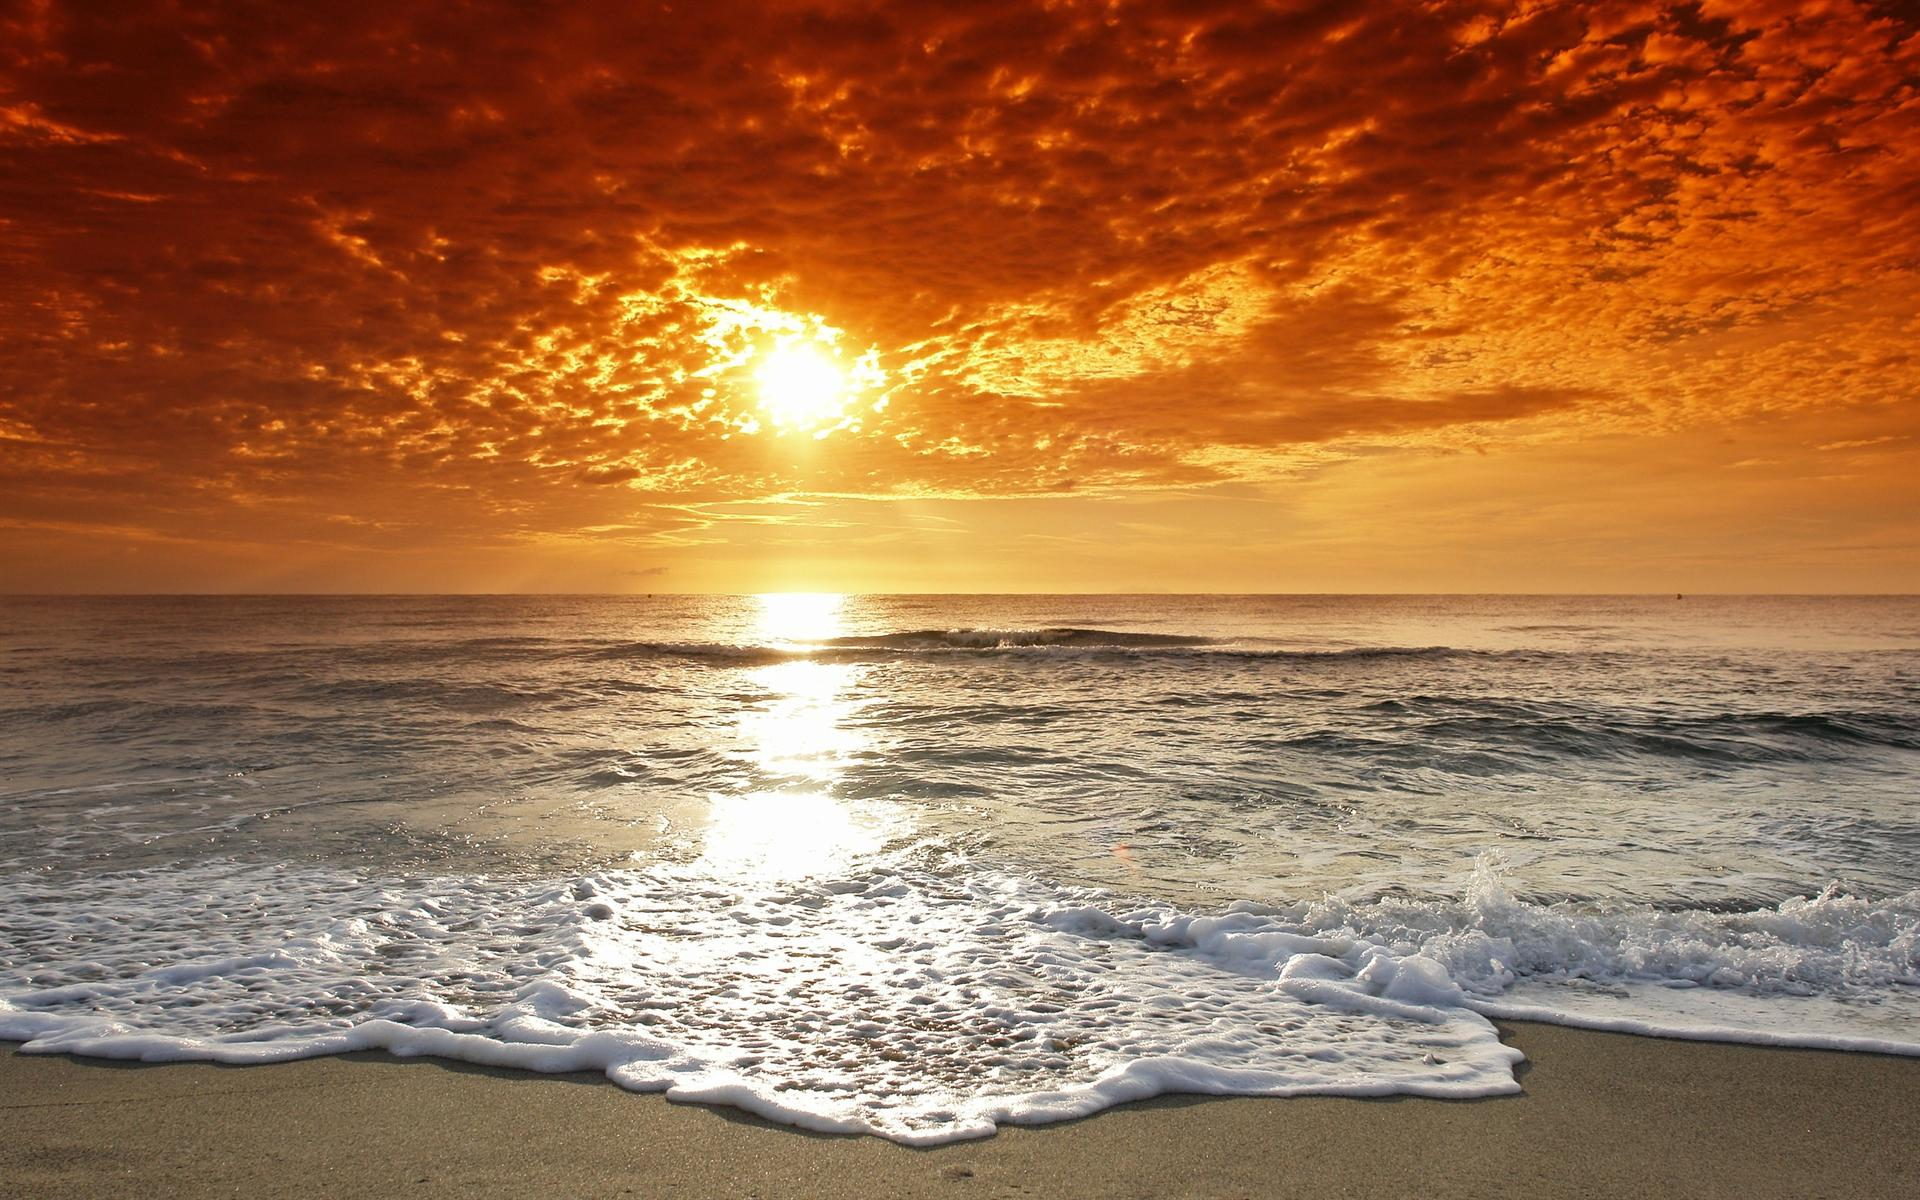 beach sunset wallpaper desktop 1920x1200 1920x1200